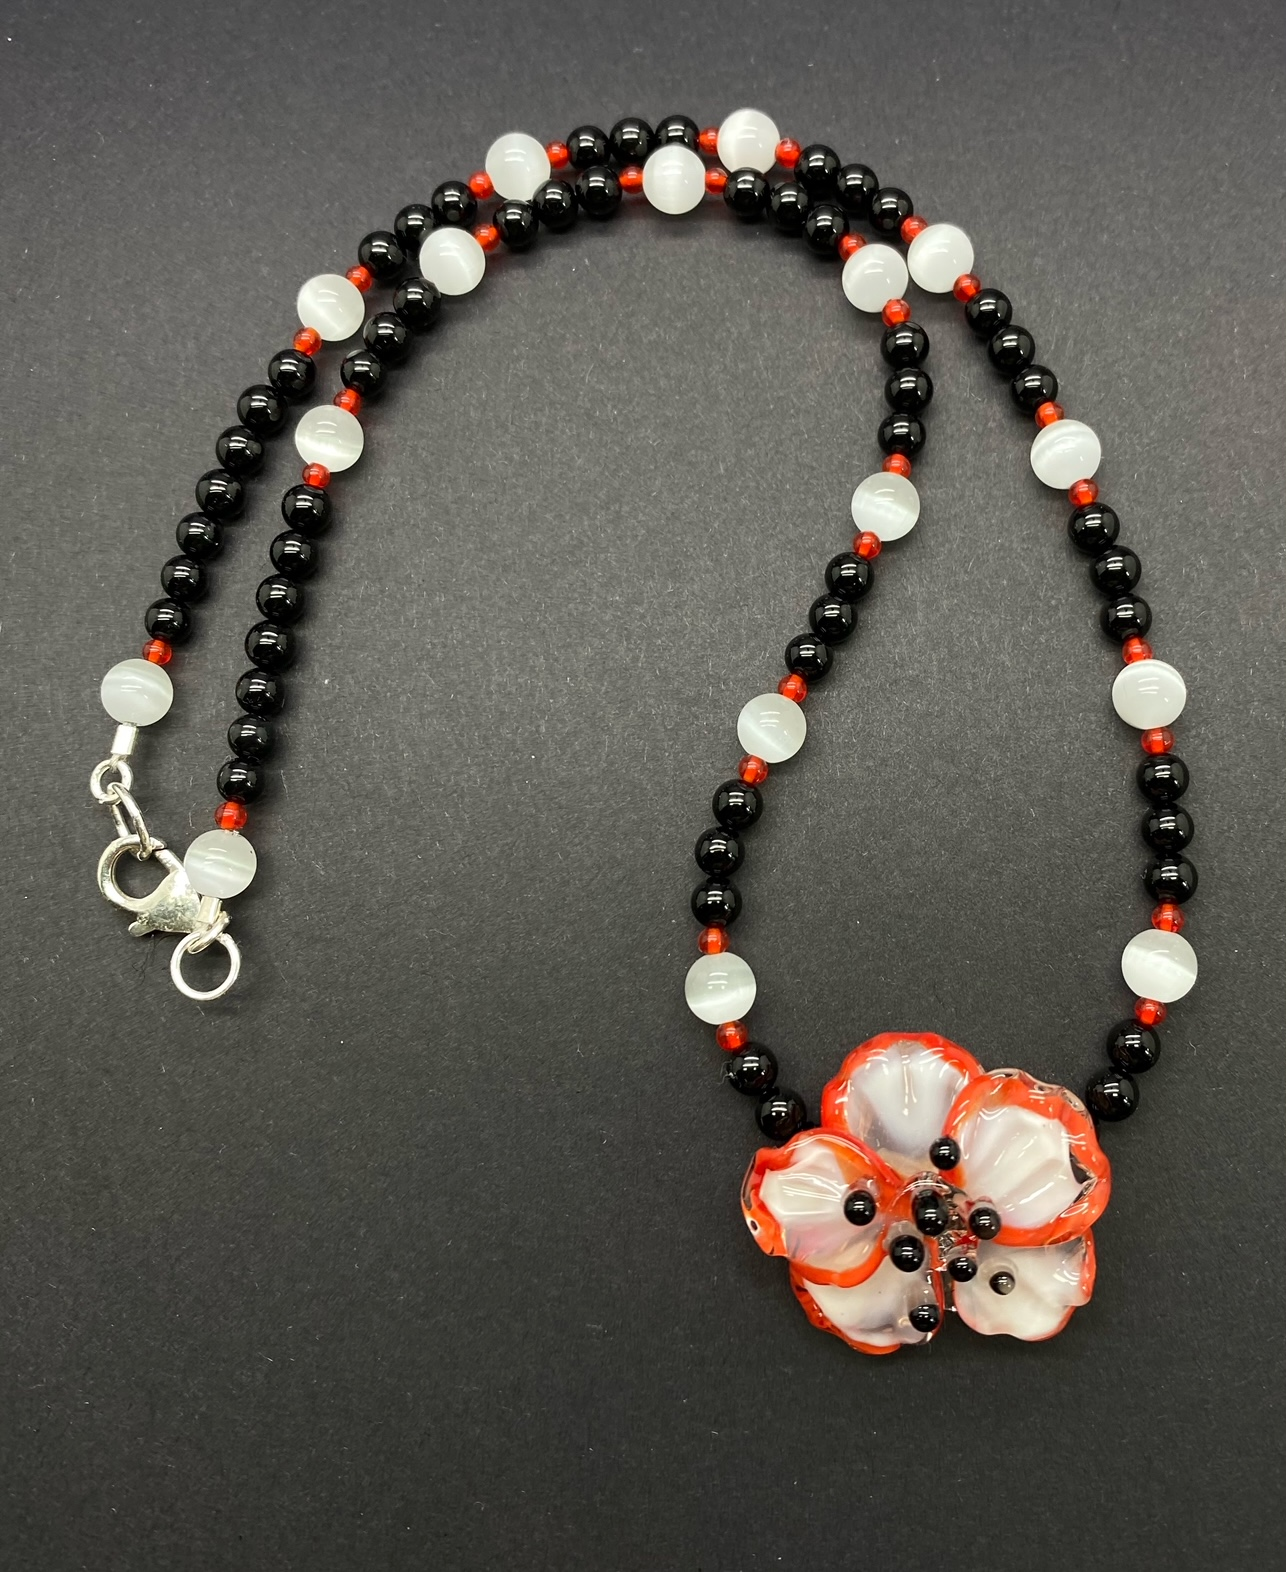 "Mindy Ackerman, Handmade Glass Flower, Black Onyx, White Fiberoptic Glass, Sterling Silver Clasp, 17"", $75"